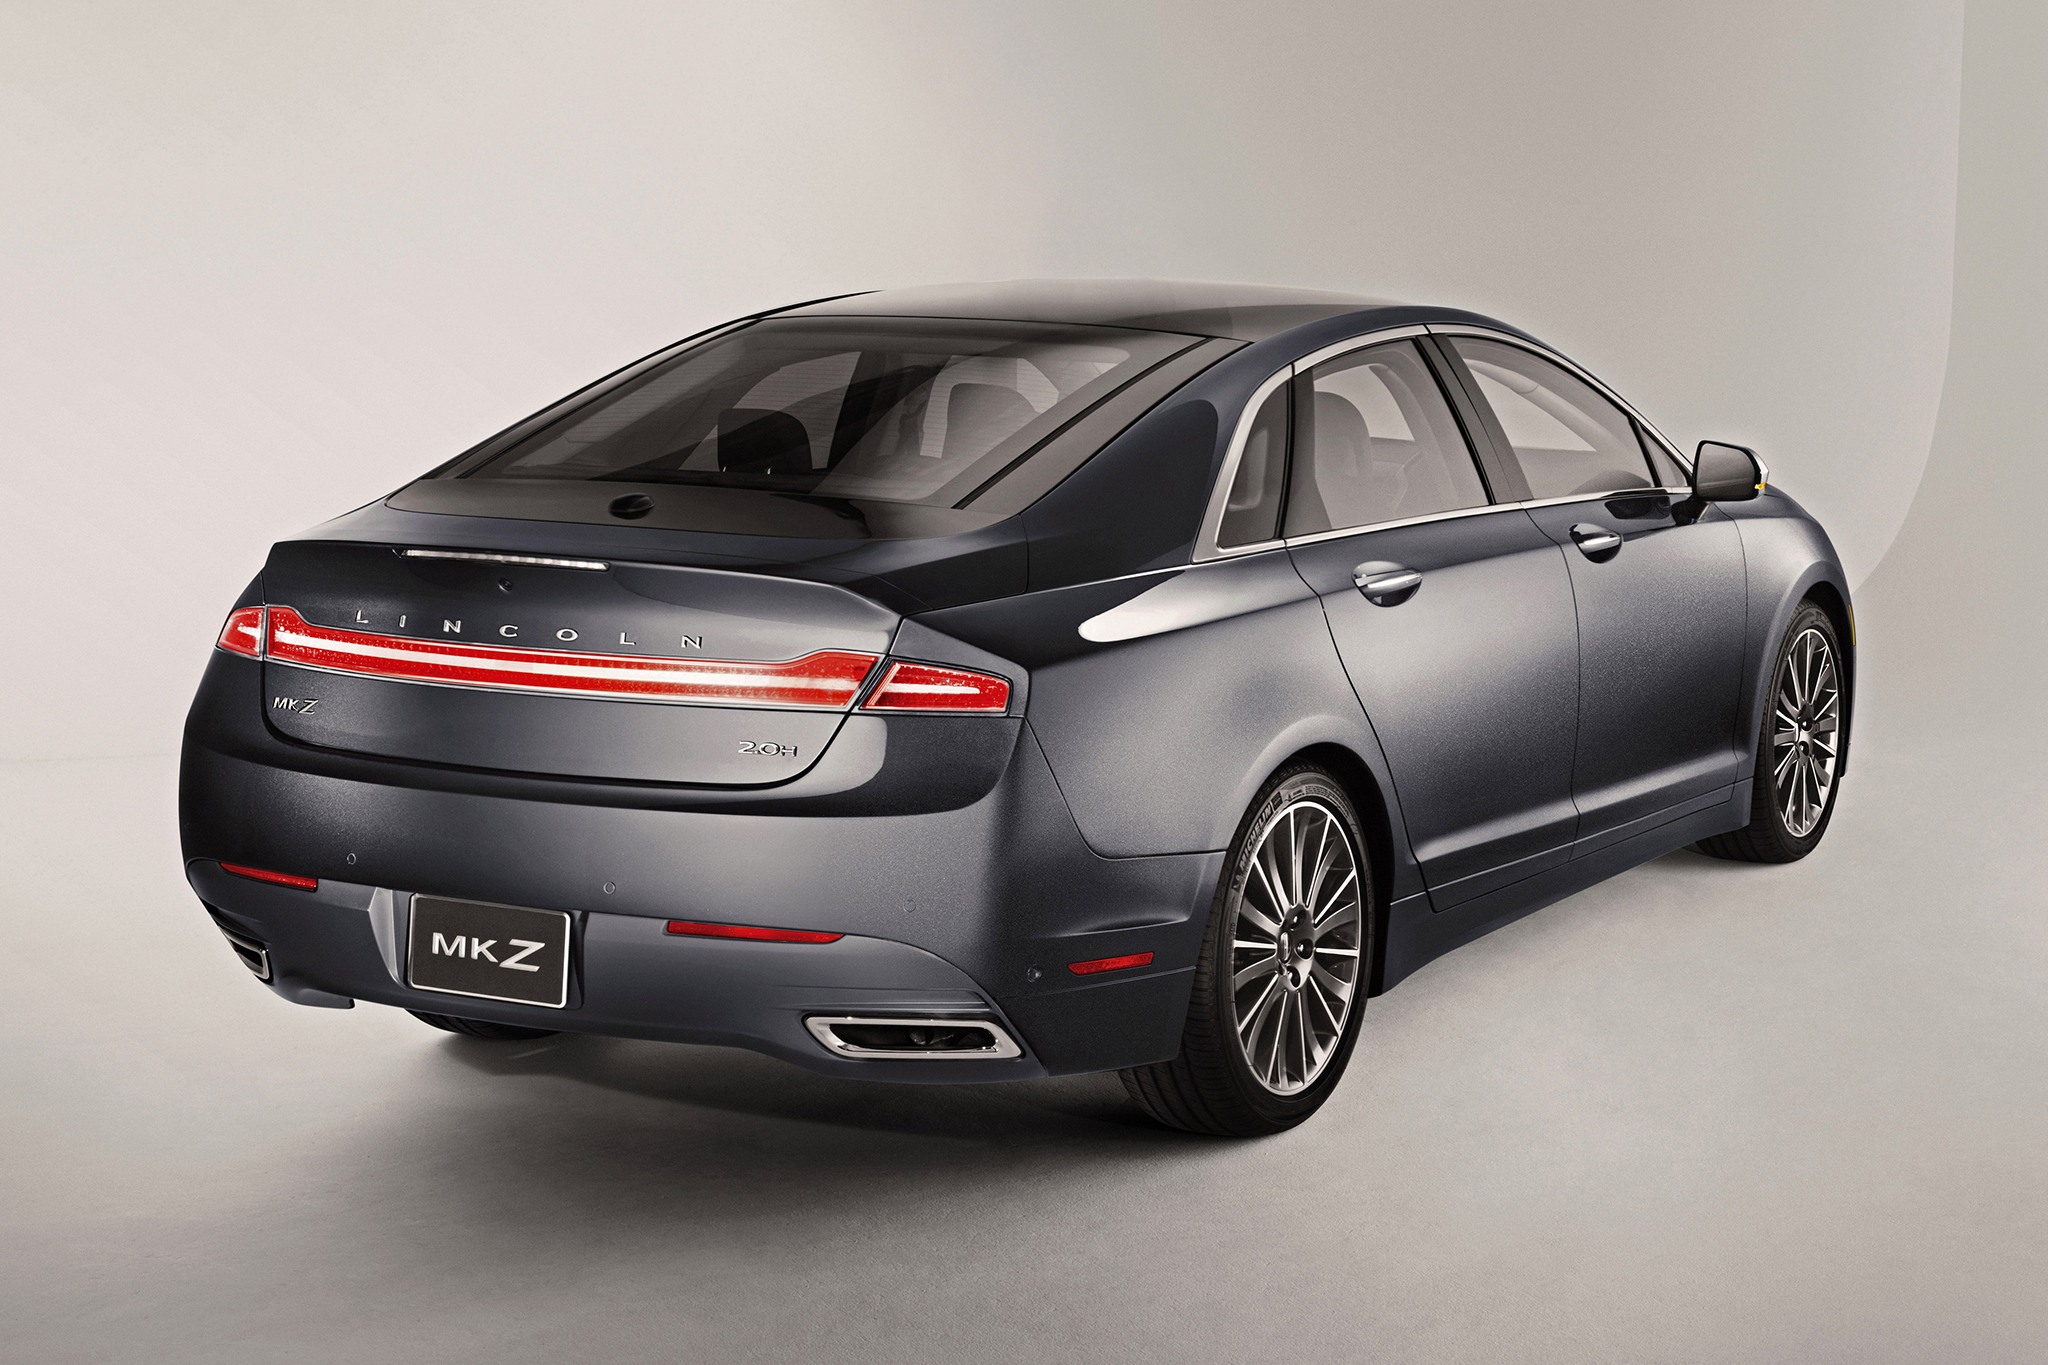 2014 Lincoln Mkz New Car Update 2020